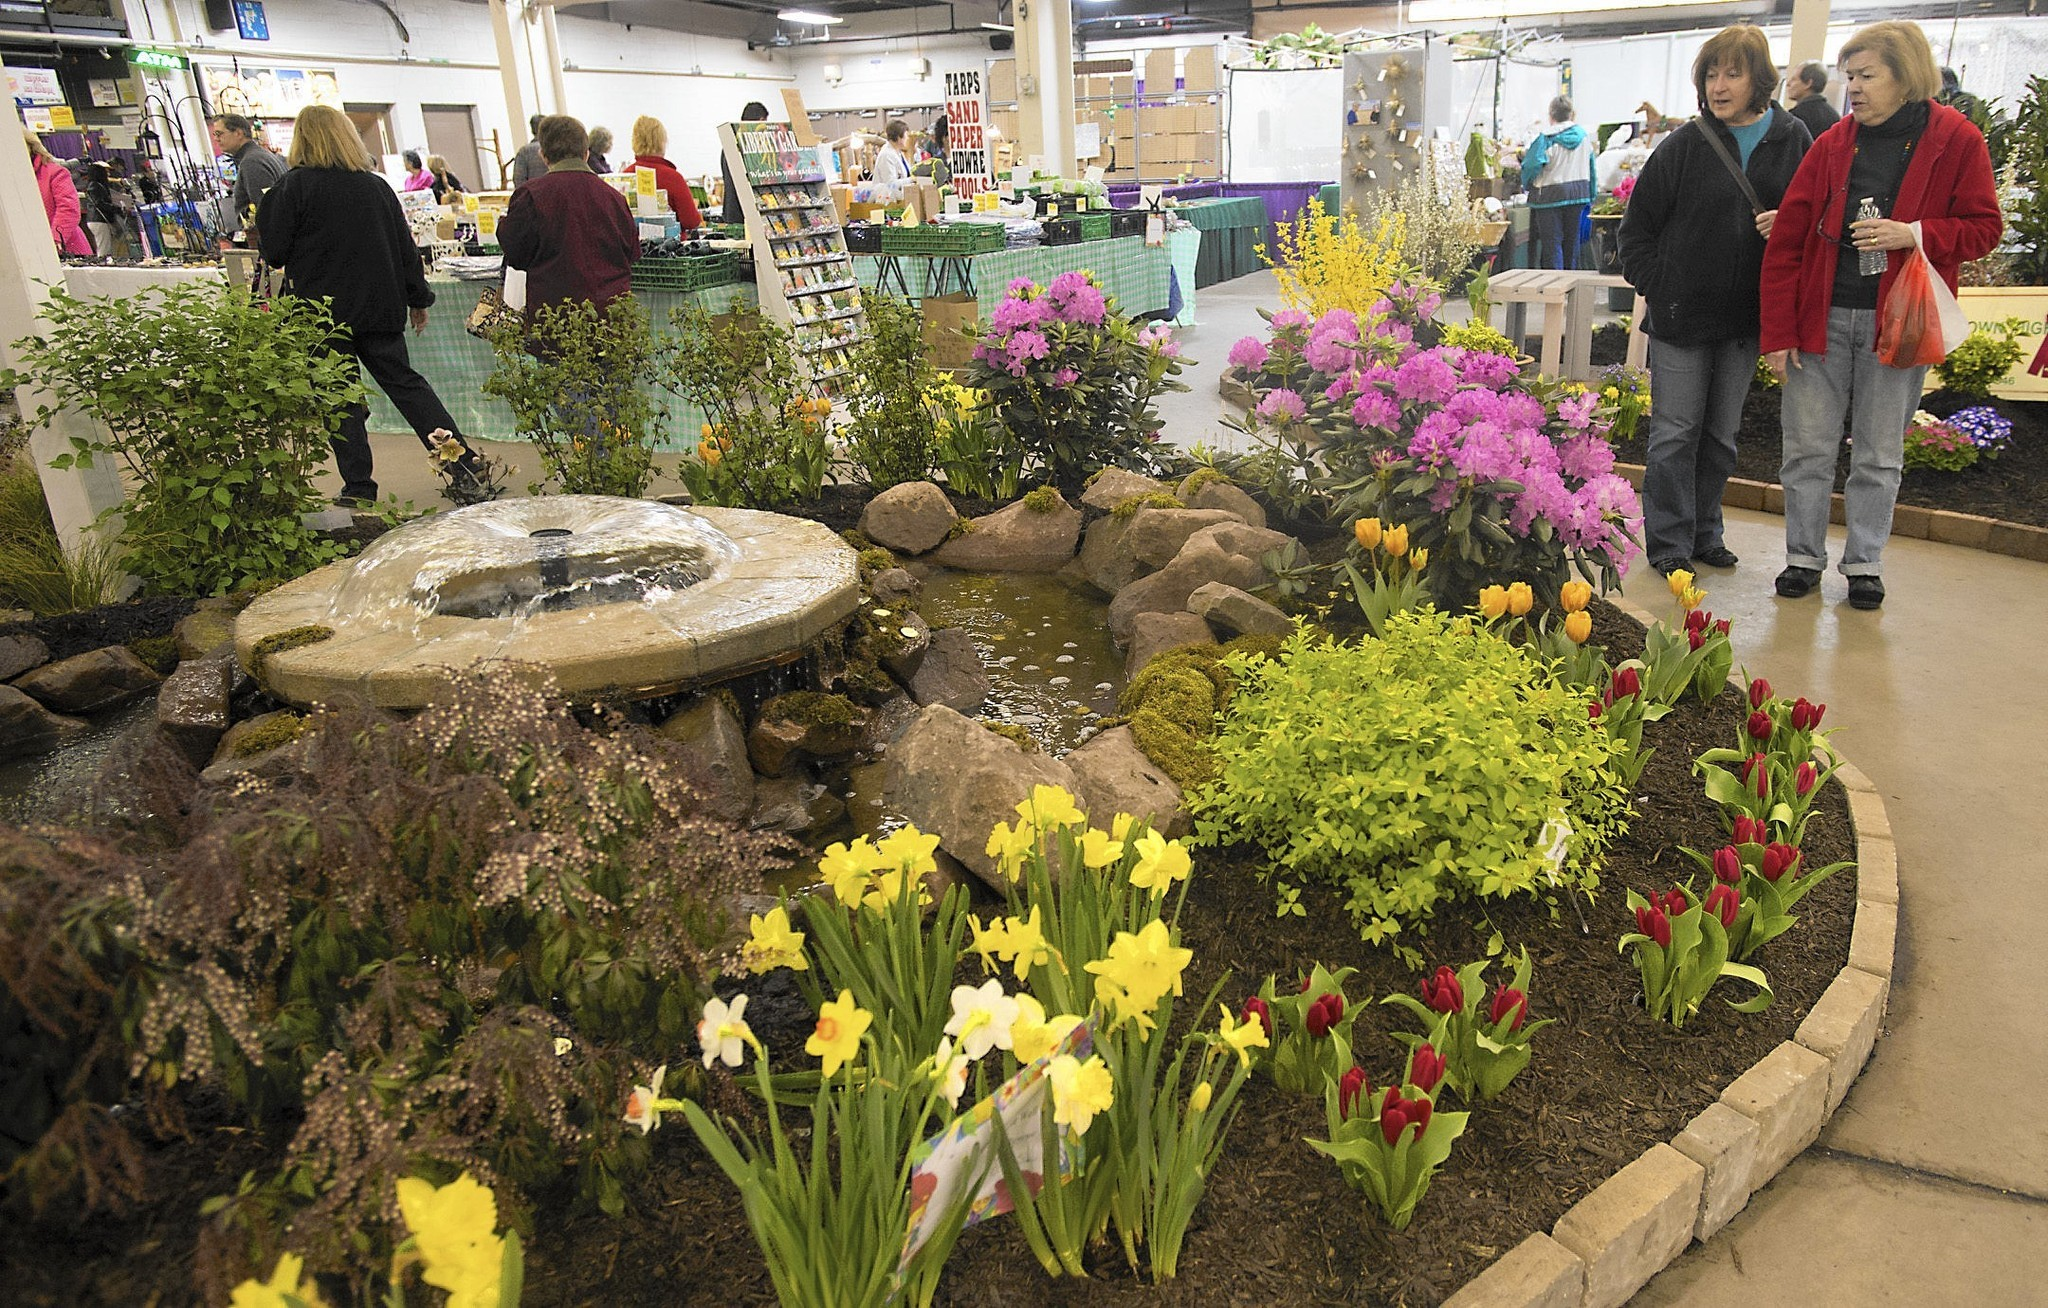 Lehigh Valley Flower Show blooms in Allentown - The Morning Call